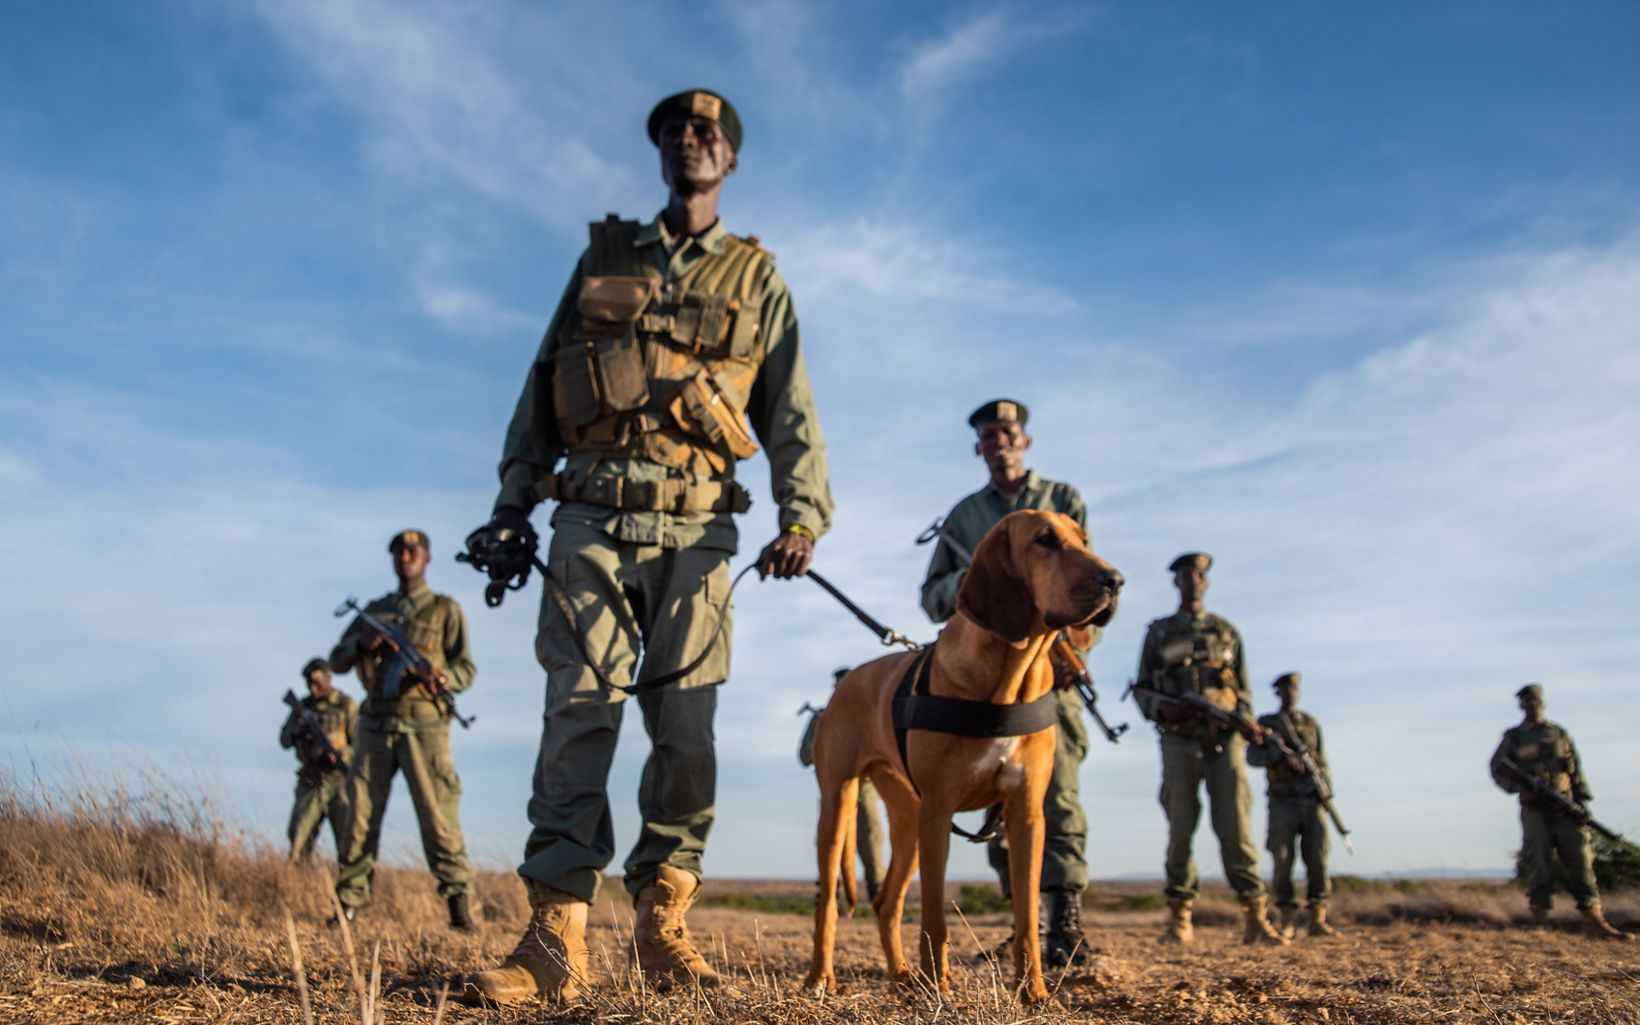 Tracker dogs and security team at Loisaba Conservancy, Kenya.